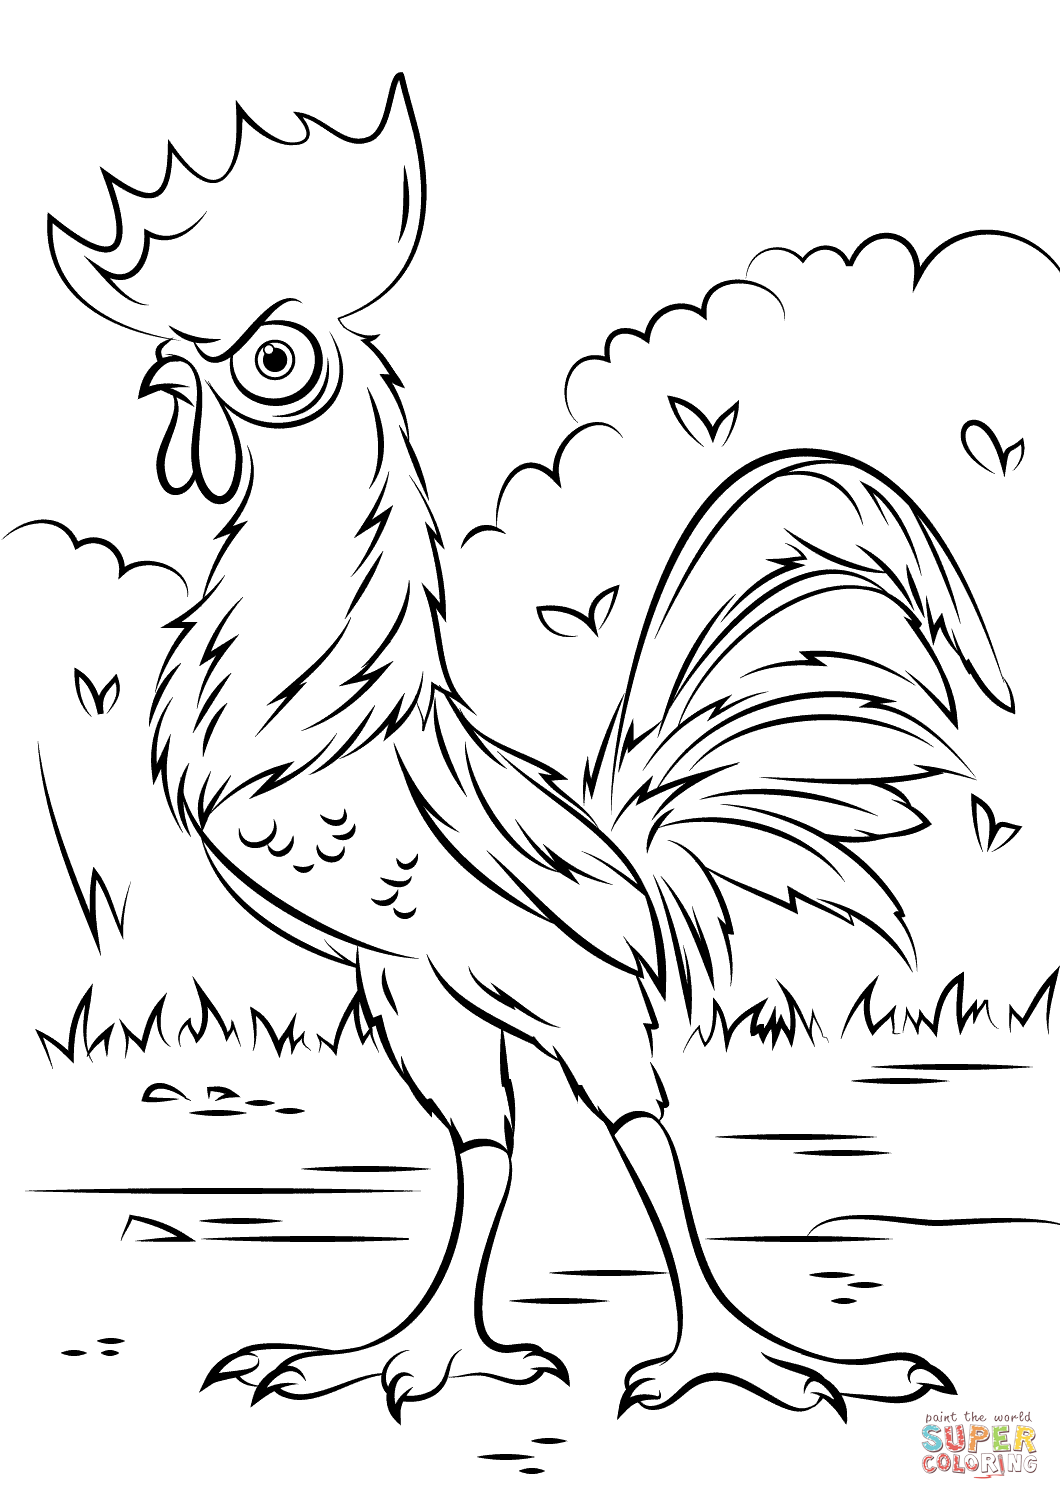 Heihei Rooster From Moana Disney Coloring Pages Printable And Book To Print For Free Find More Online Kids Adults Of